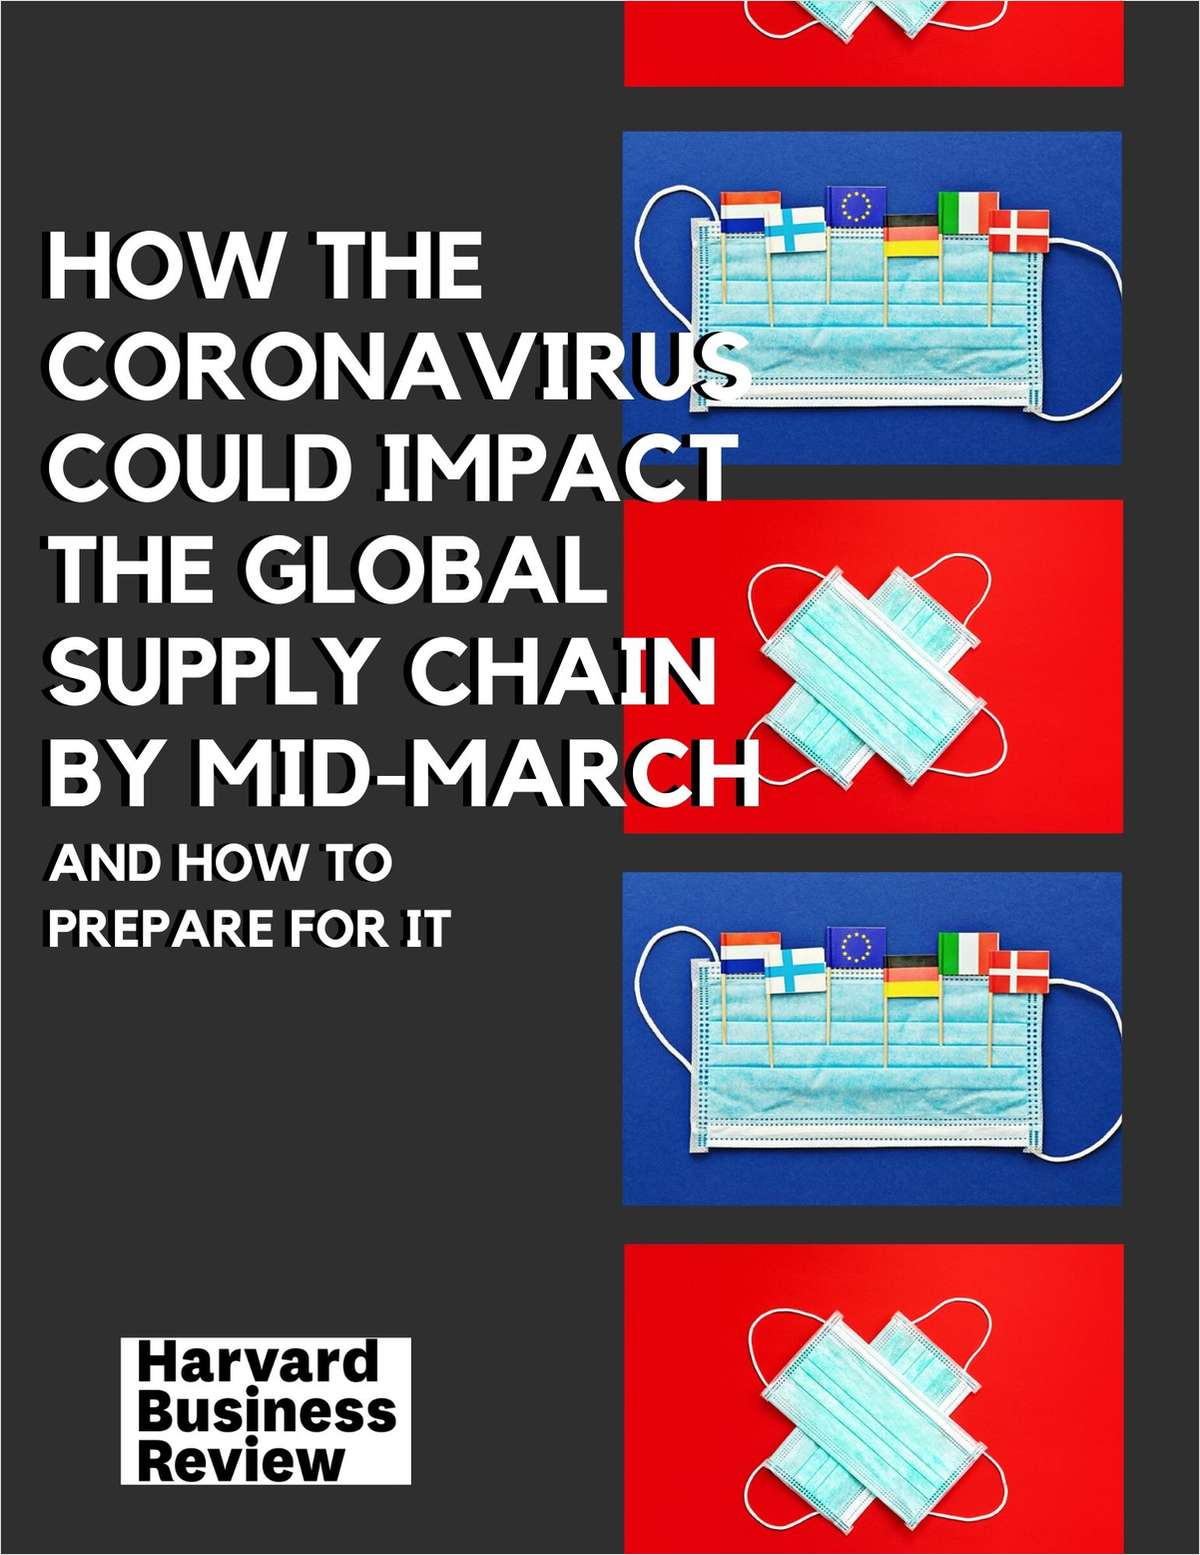 How the Coronavirus Could Impact the Global Supply Chain By Mid-March (And How to Prepare for It)